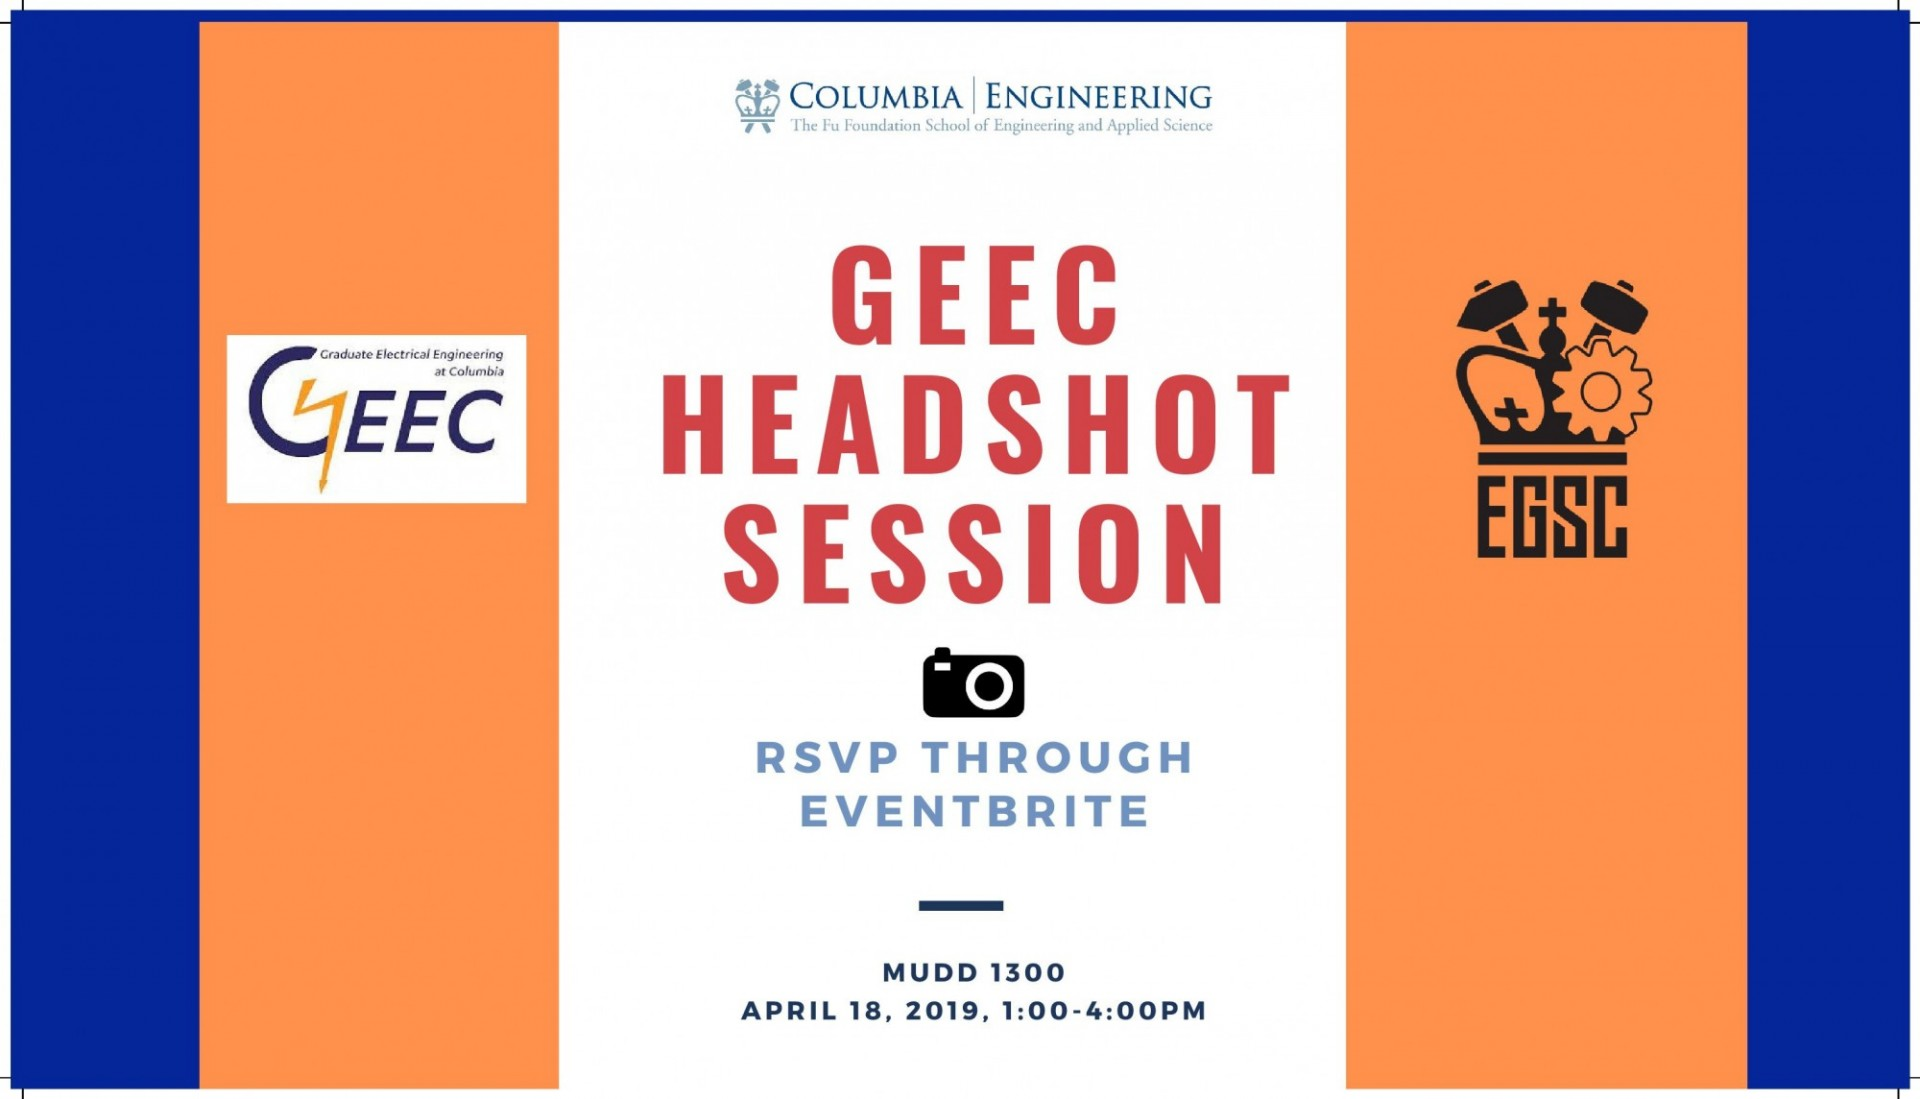 GEEC & EGSC Presents: Headshot Session for Electrical Engineering Students Event Flyer